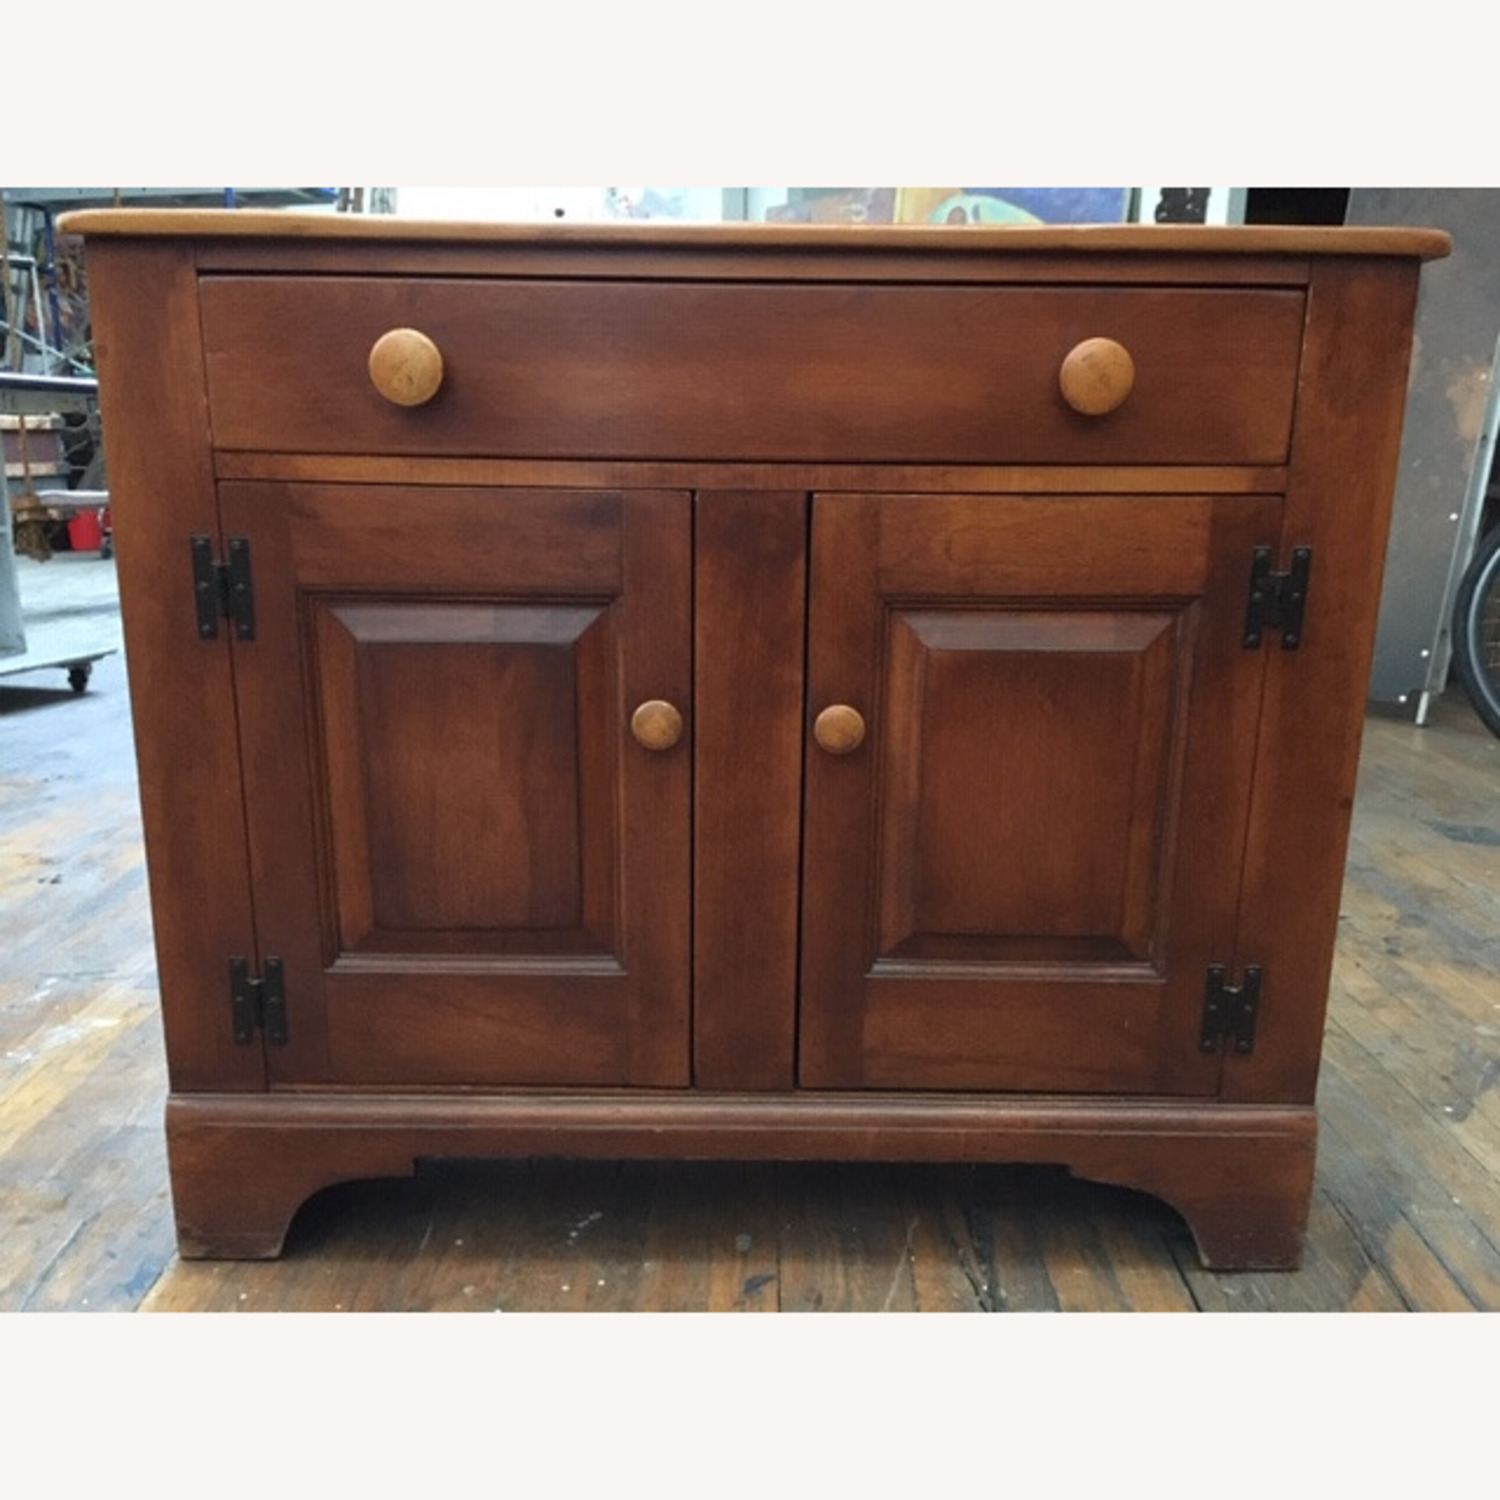 Cushman Colonial Sideboard 1950s Solid Maple - image-2